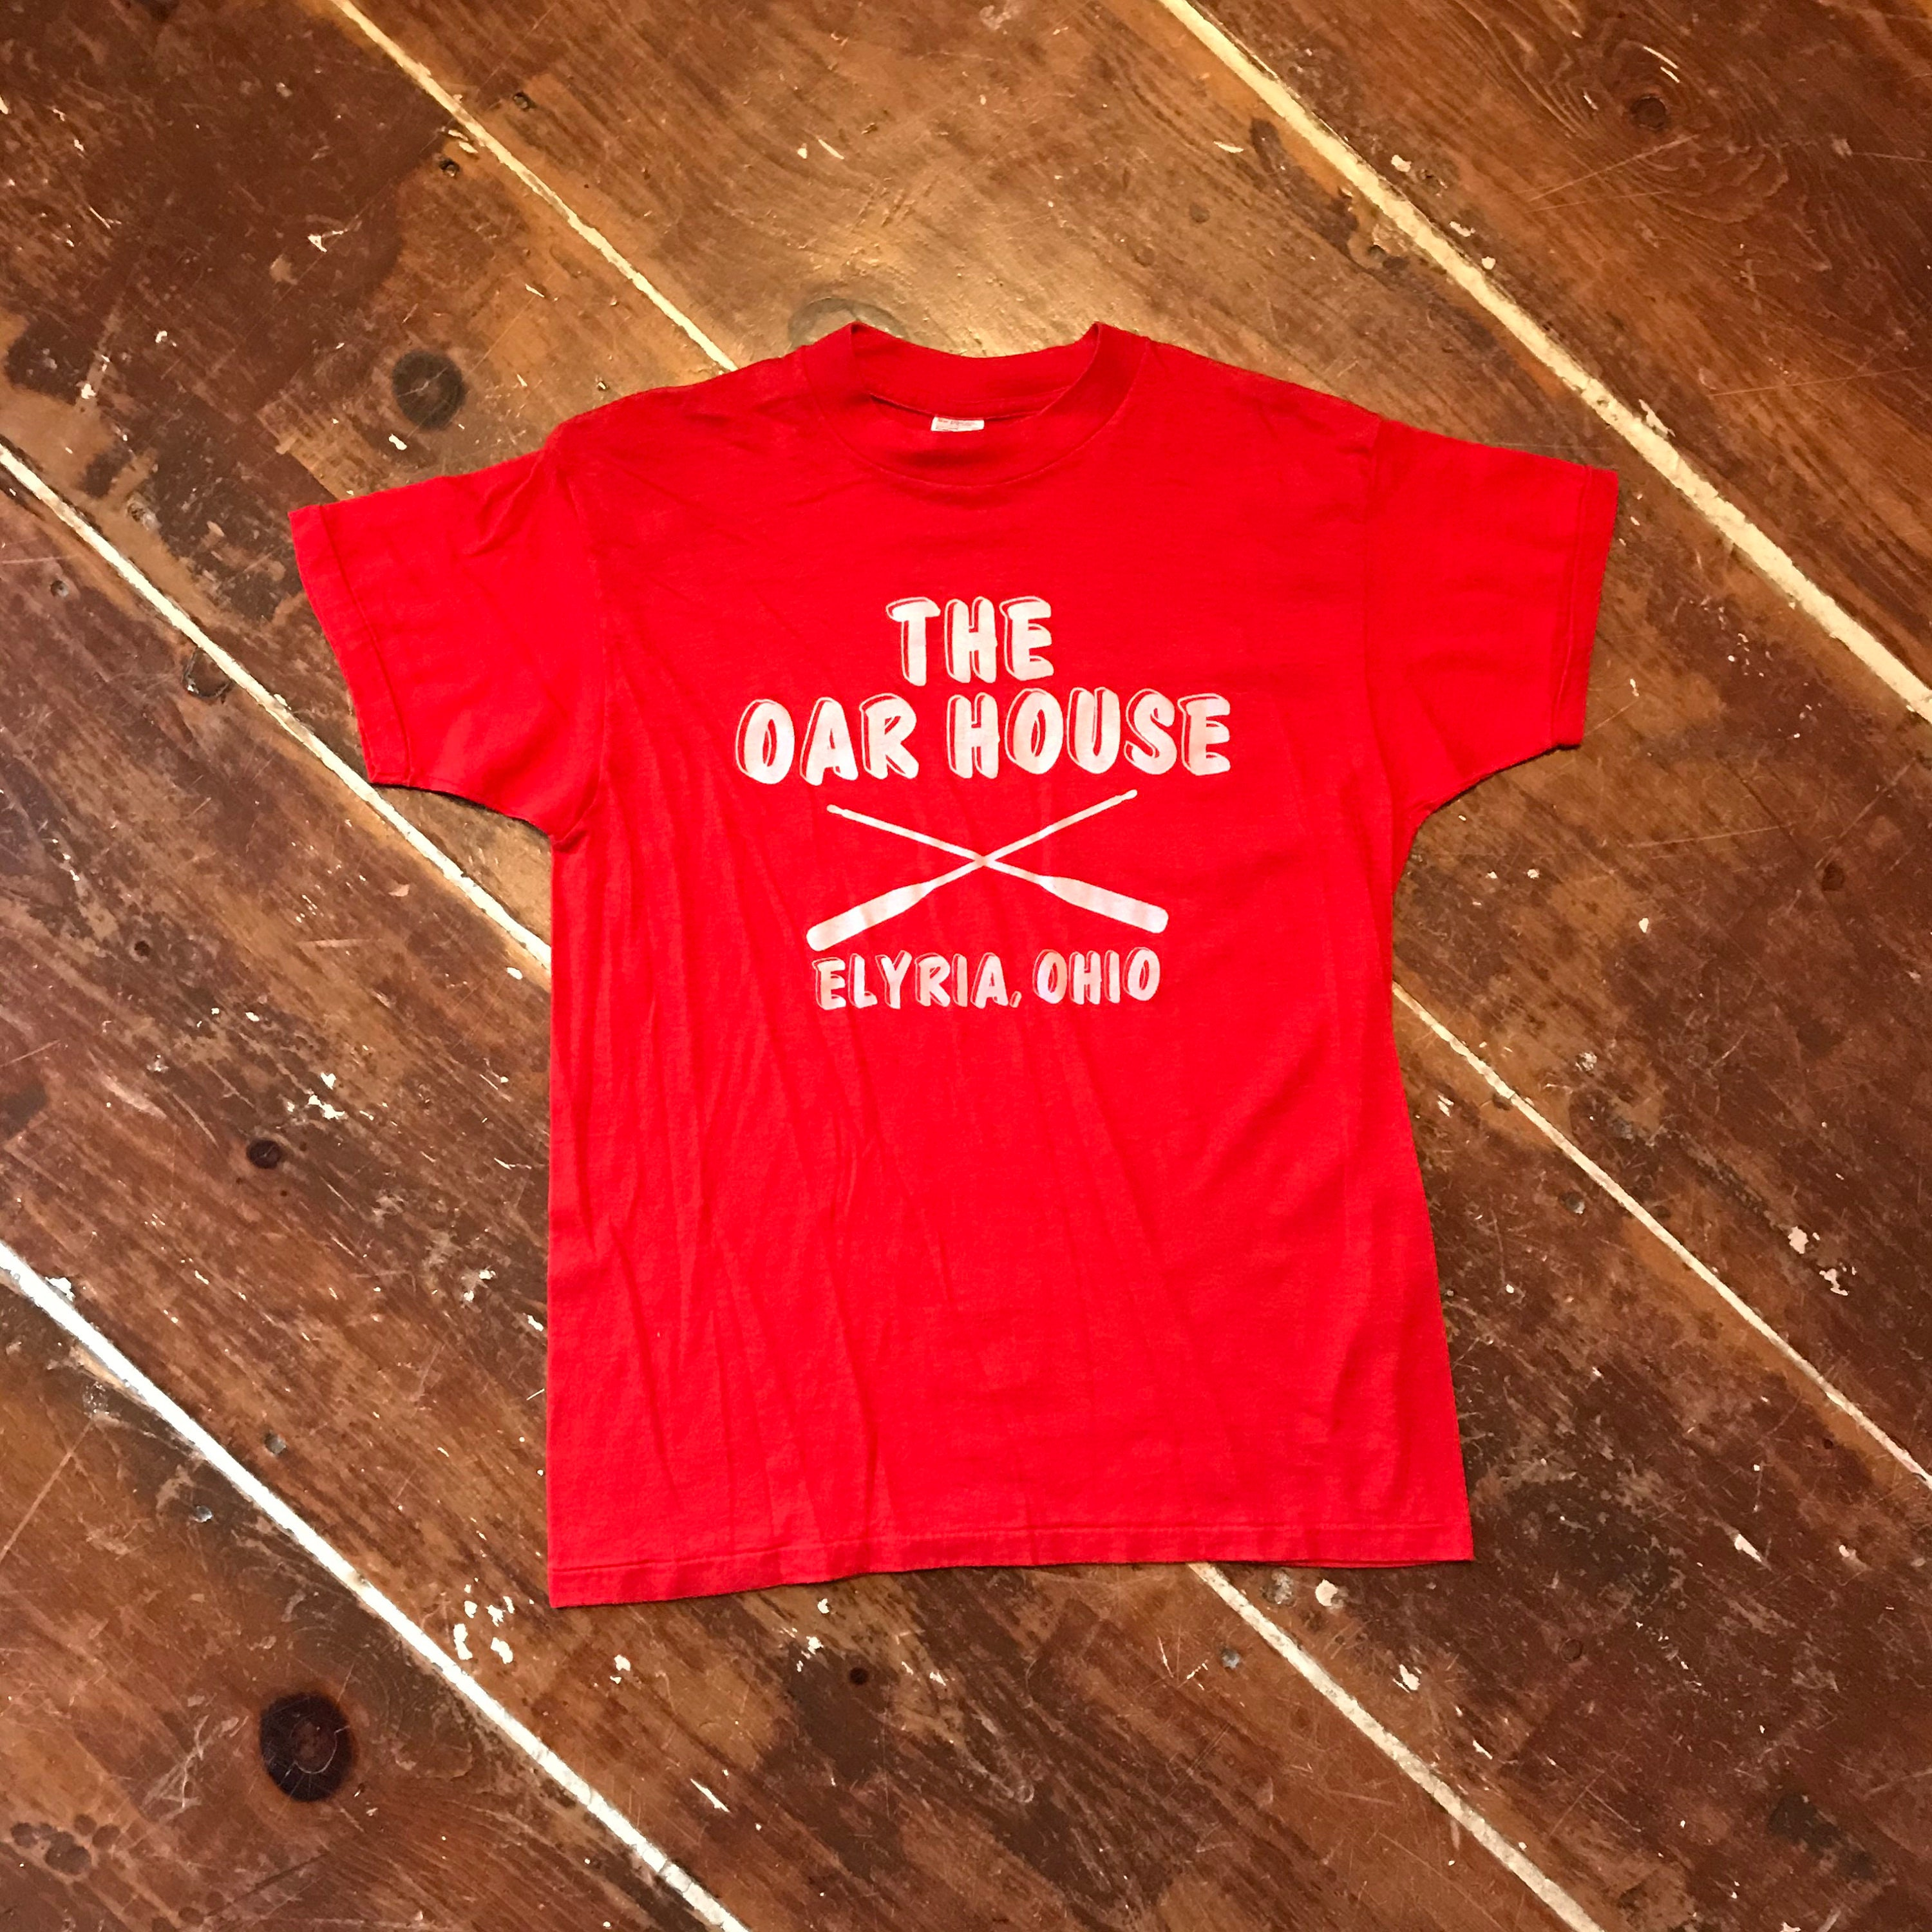 1970s Mens Shirt Styles – Vintage 70s Shirts for Guys Vintage 70S The Oar House Elyria Ohio T-Shirt  Mens ML Jc Penney 50-50 Red Crew $22.00 AT vintagedancer.com